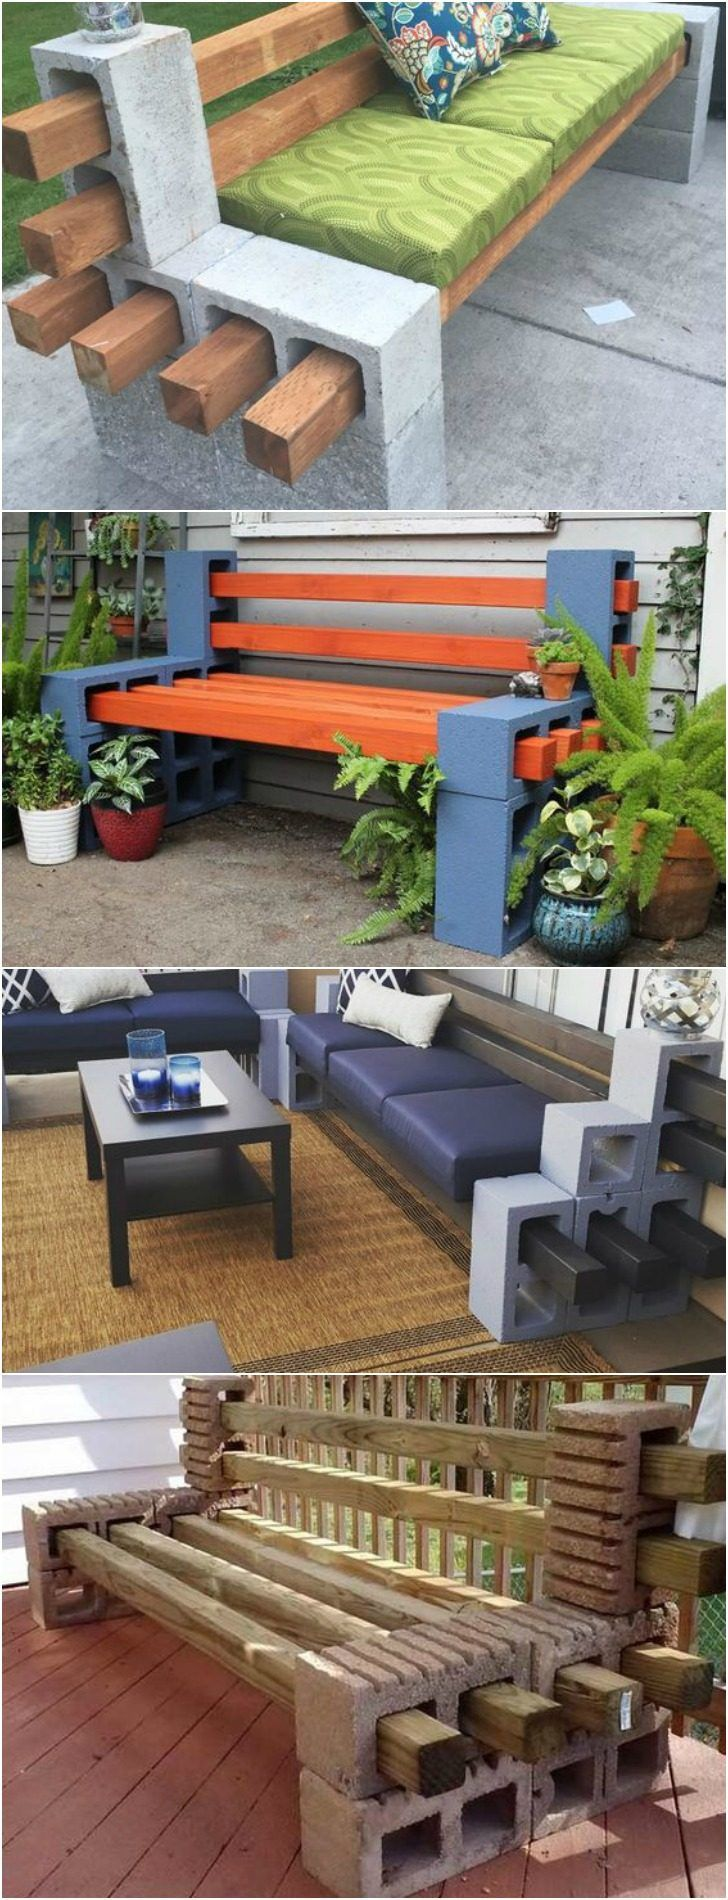 10 Amazing Cinder Block benches | Deco | Pinterest | Backyard, Patio ...